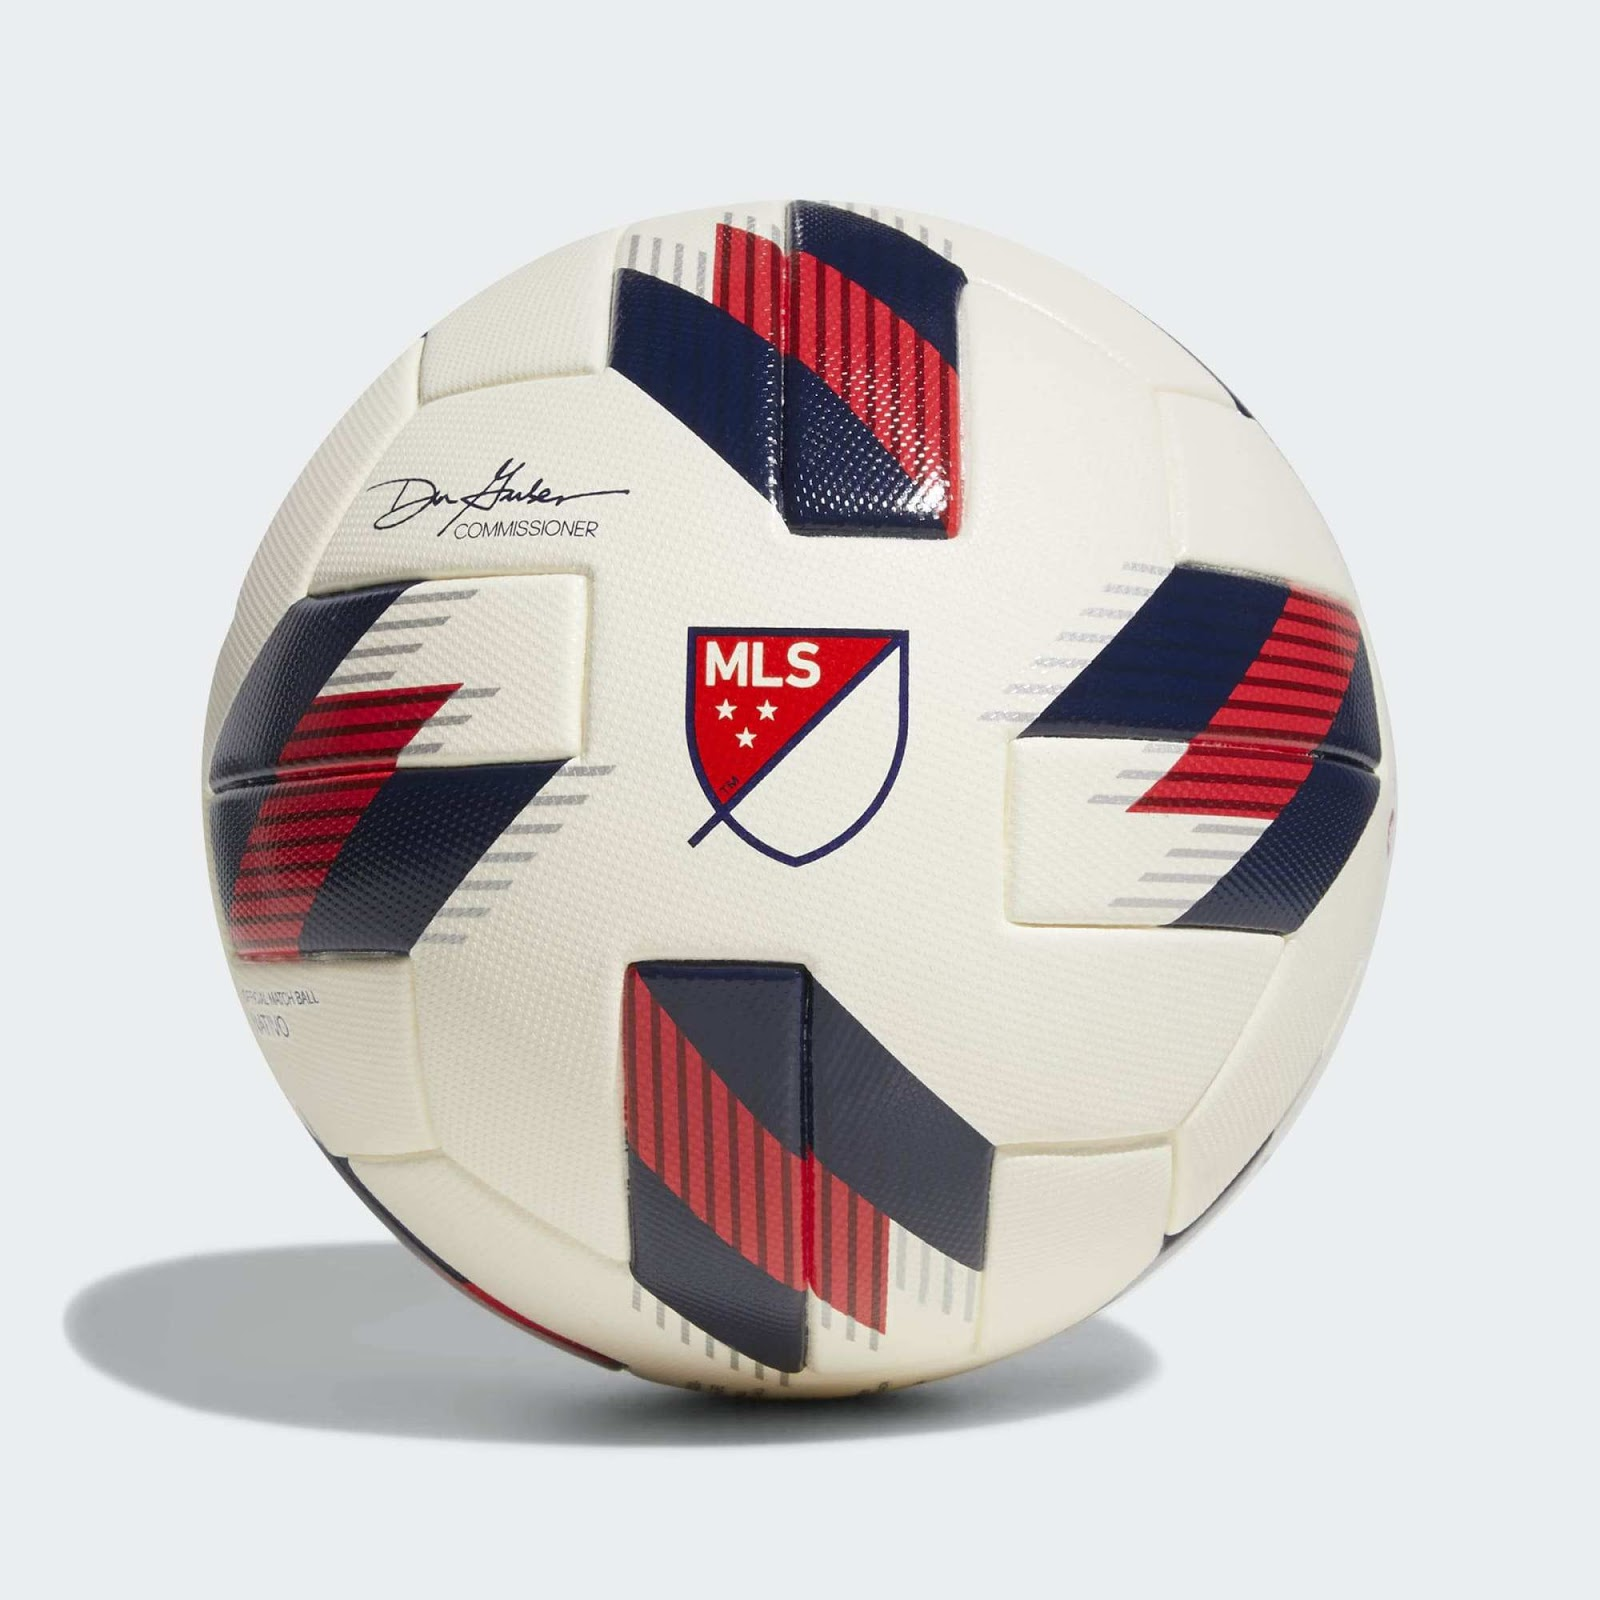 f5ed23902 ... Ball is off-white with red and navy applications. It is a design that  comes with various elements that can be also found on the Adidas MLS 2018  All-Star ...